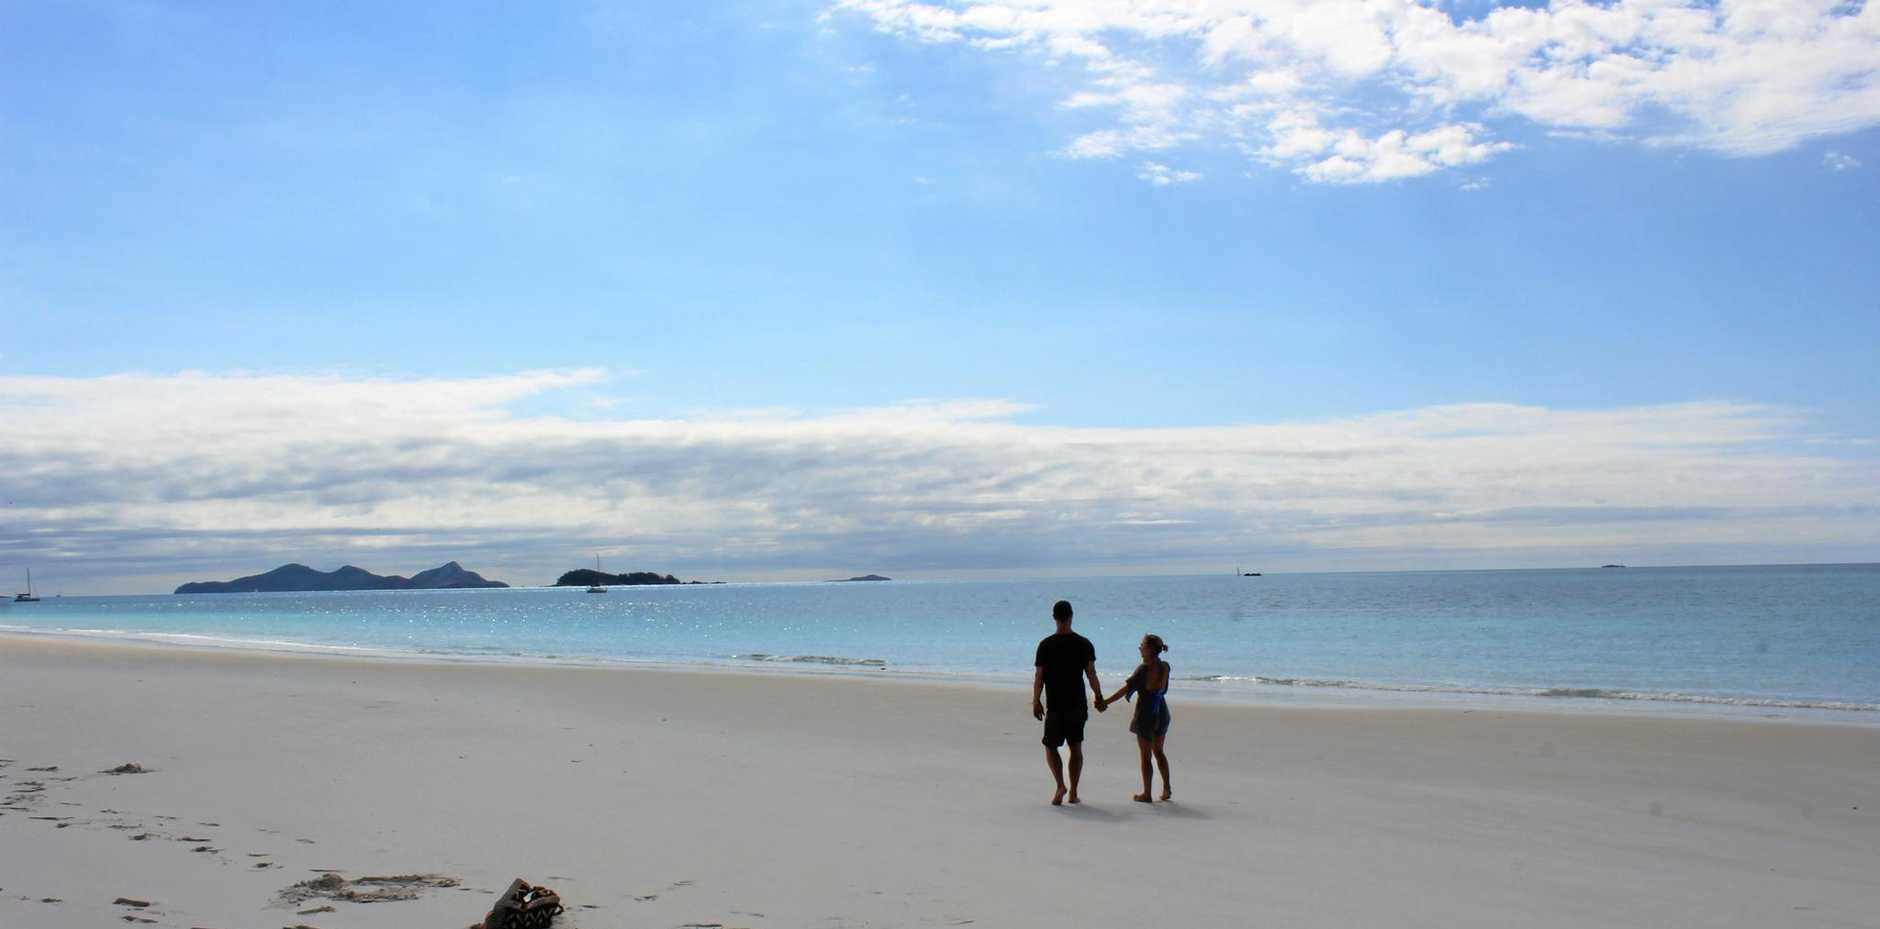 A WEEKLONG operation in the Whitsundays has revealed seven of ten tourism operators were non-compliant with the Environmental Protection Act.